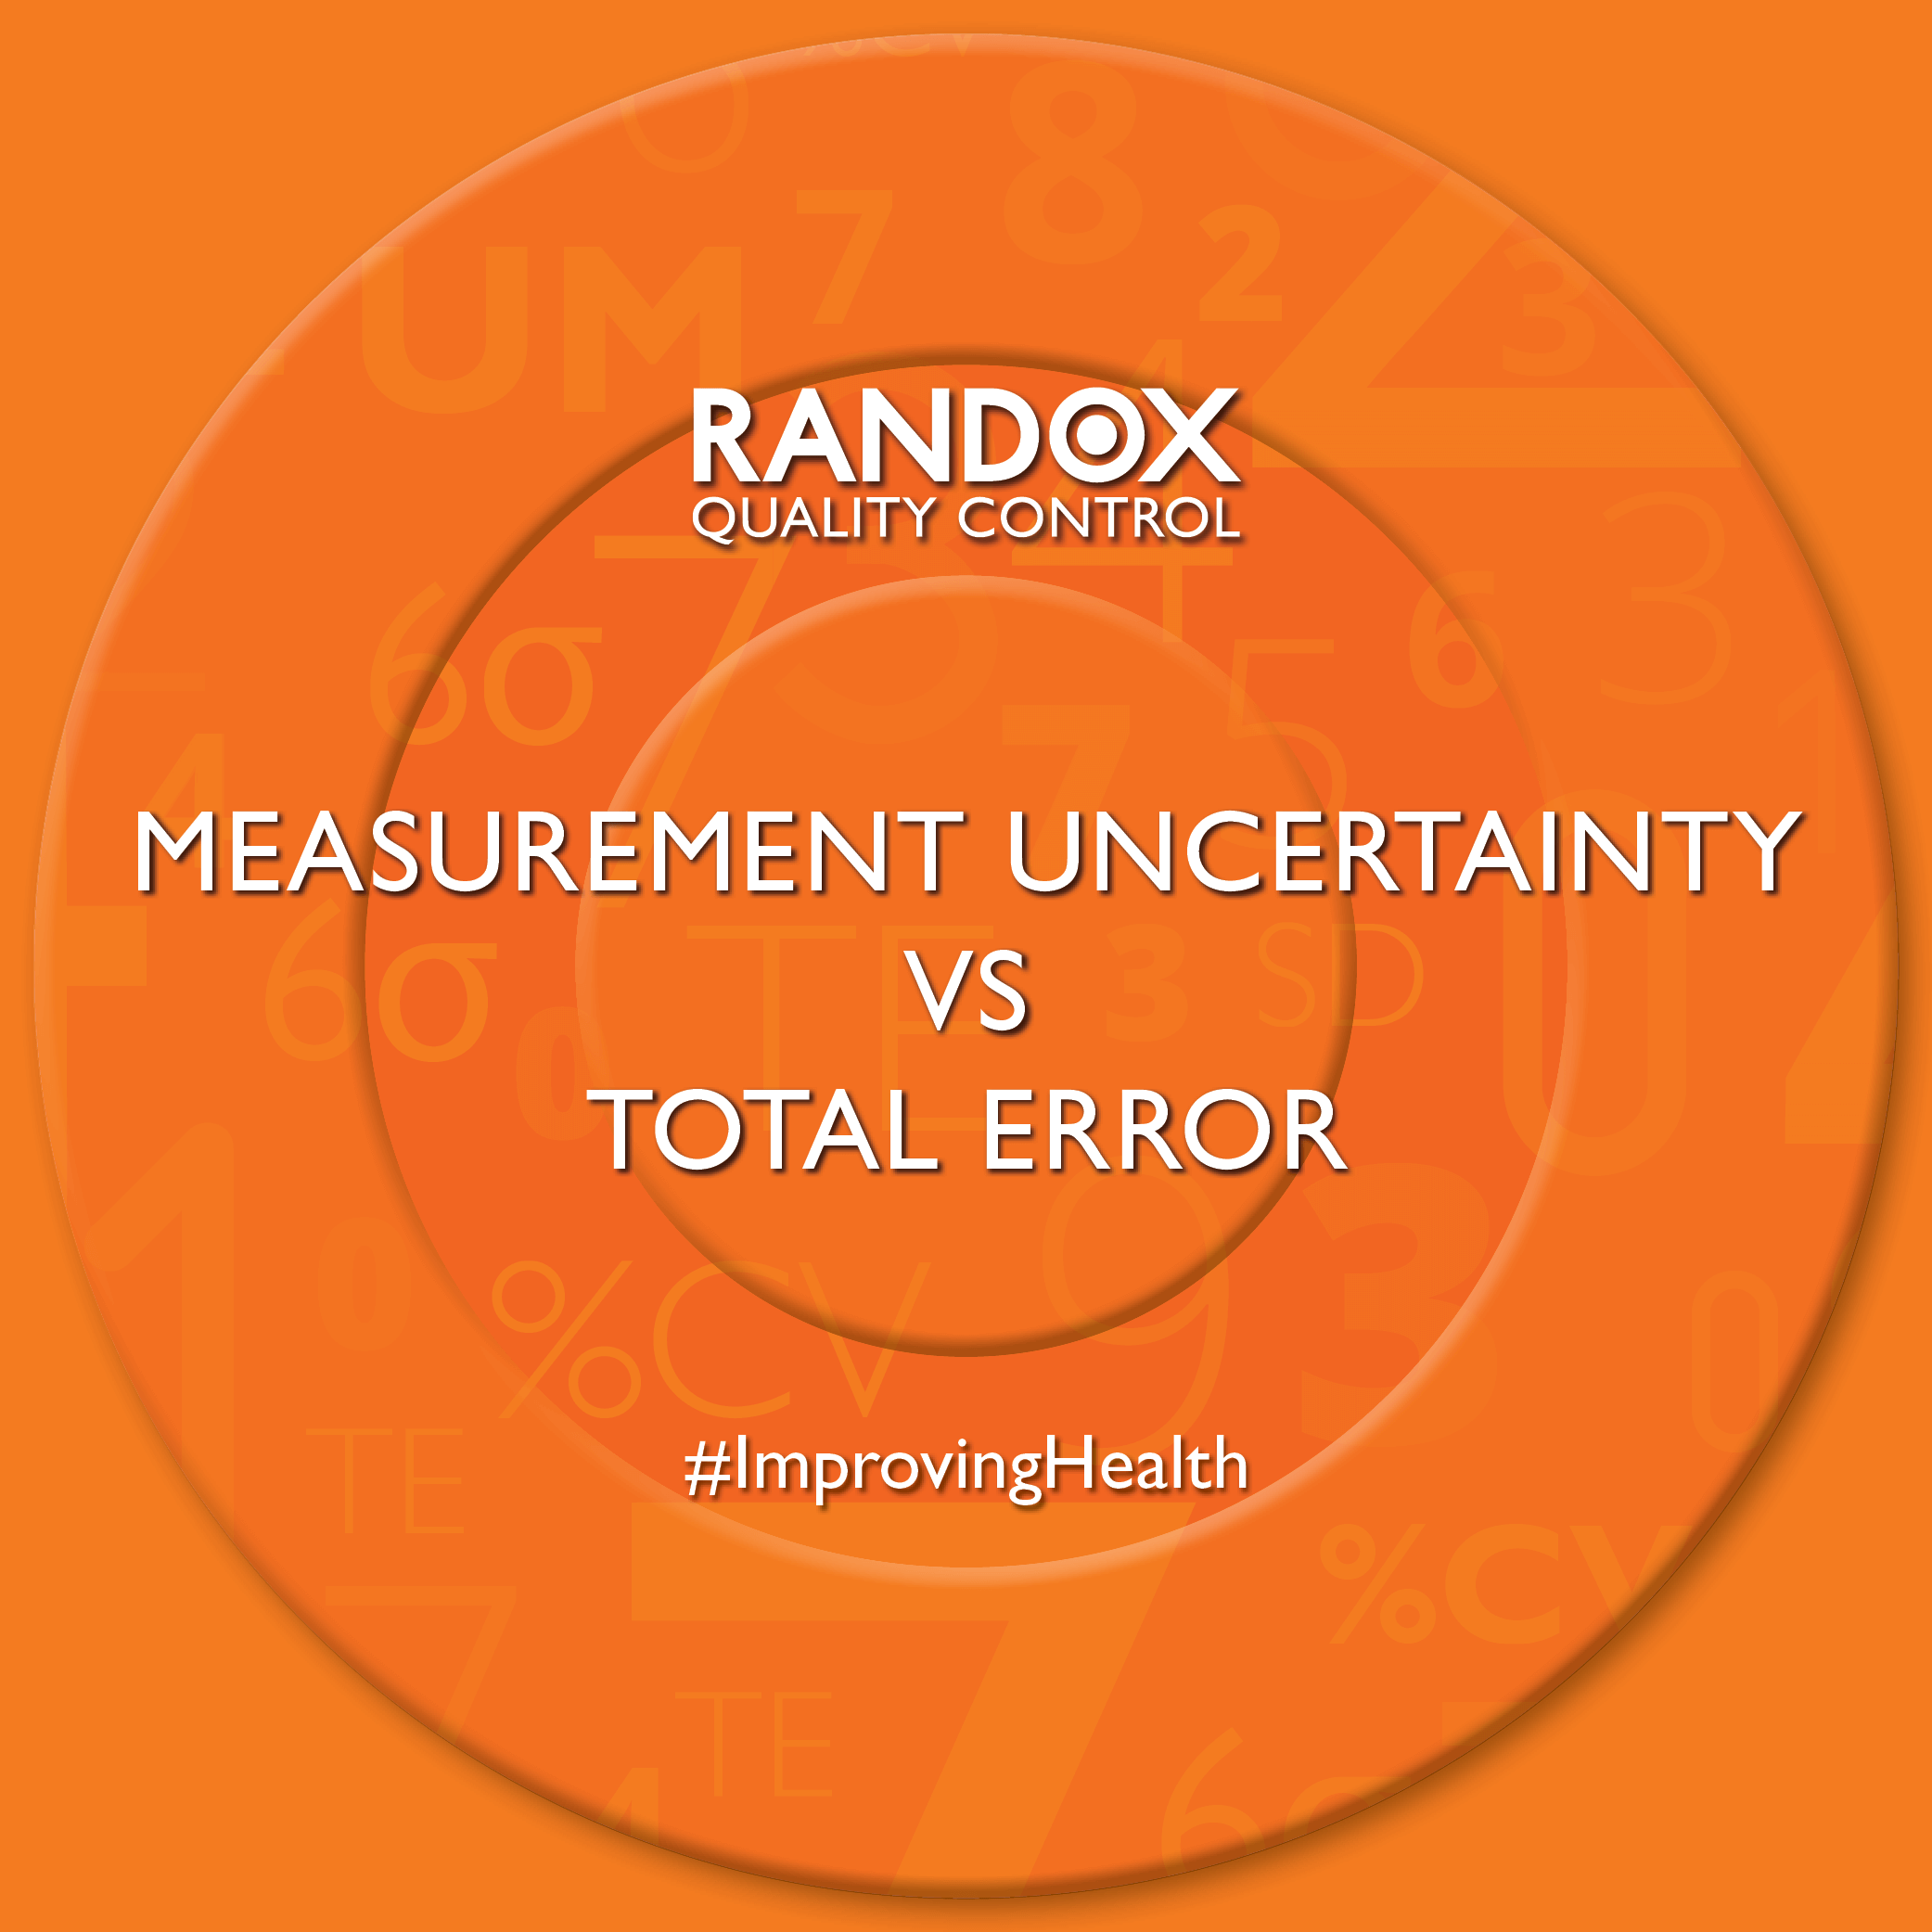 Measurement Uncertainty vs Total Error